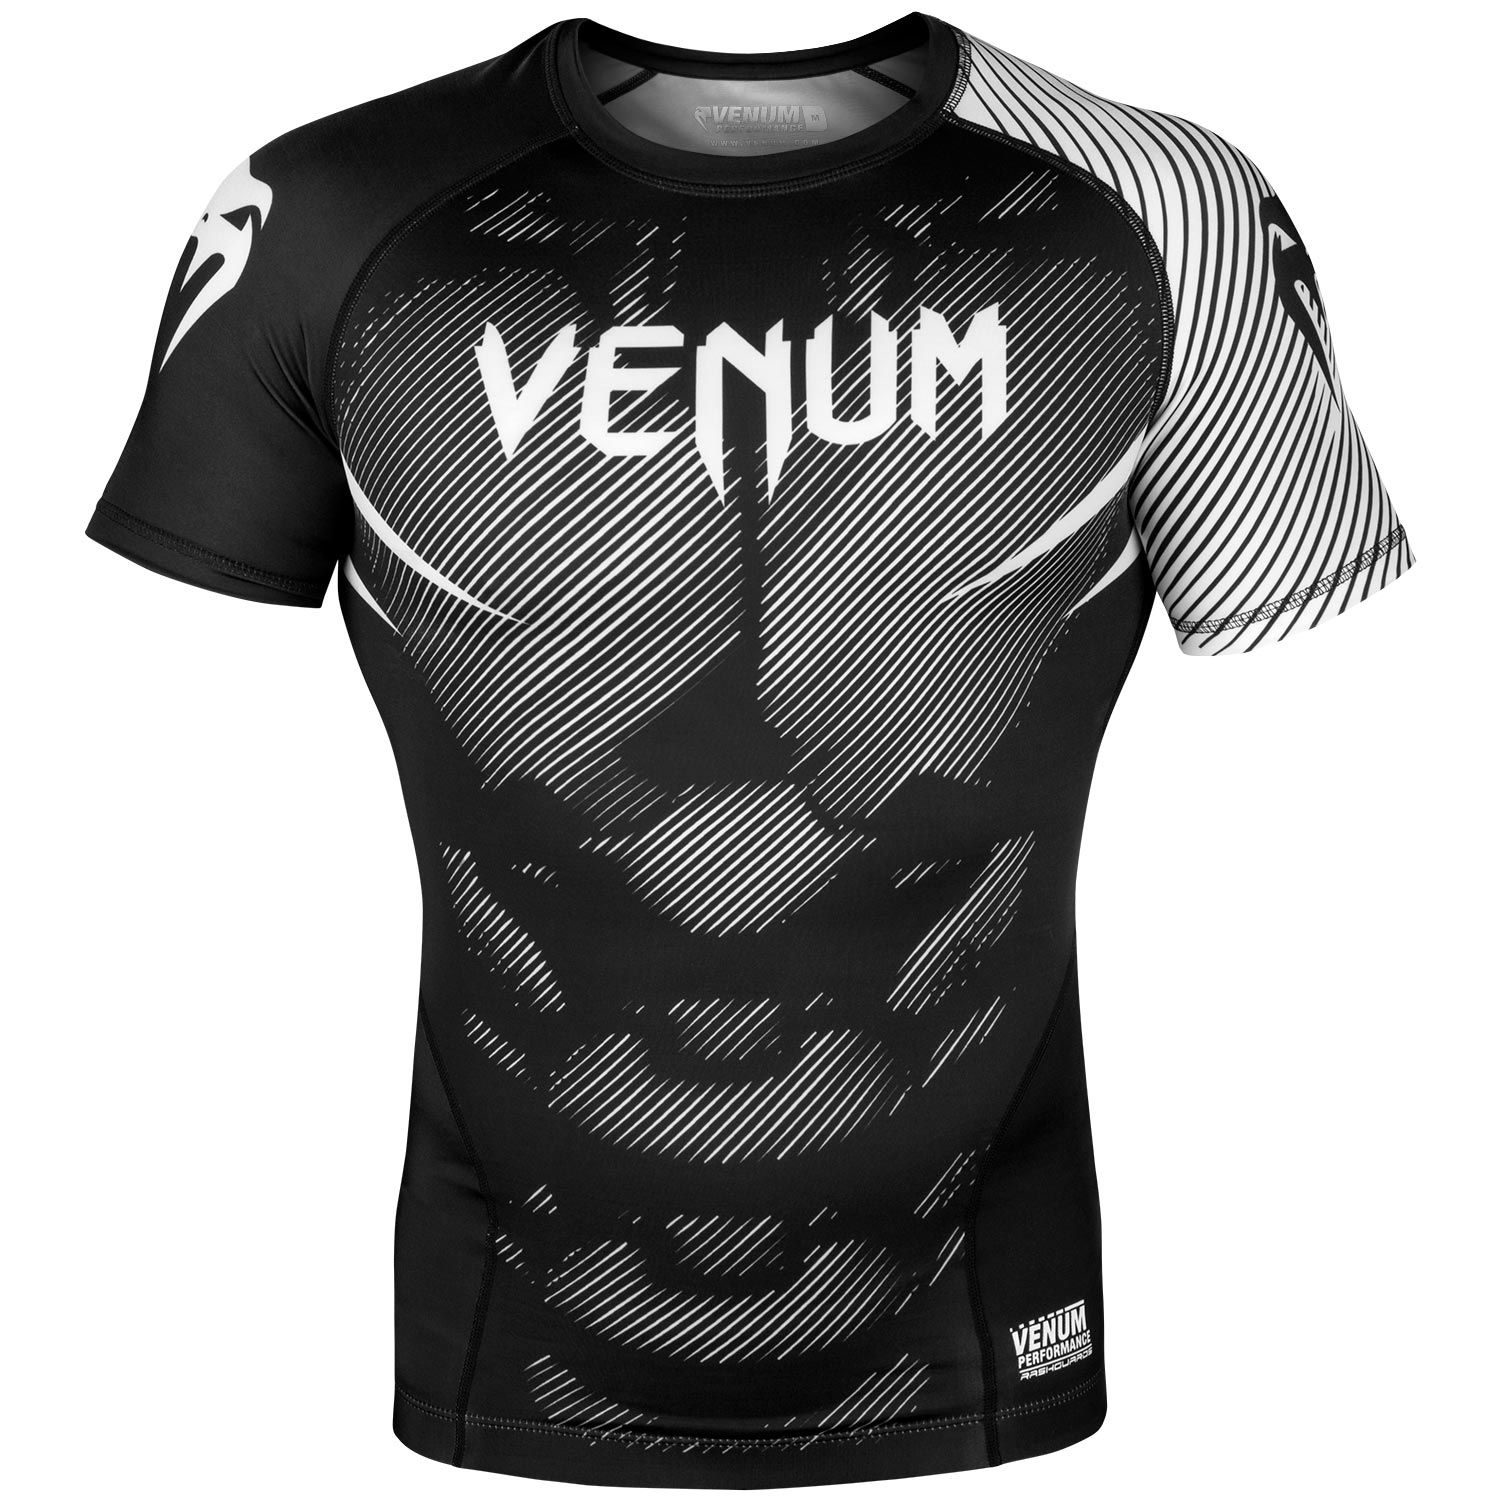 Venum NoGi 2.0 Rashguard - Short Sleeves - Black/White